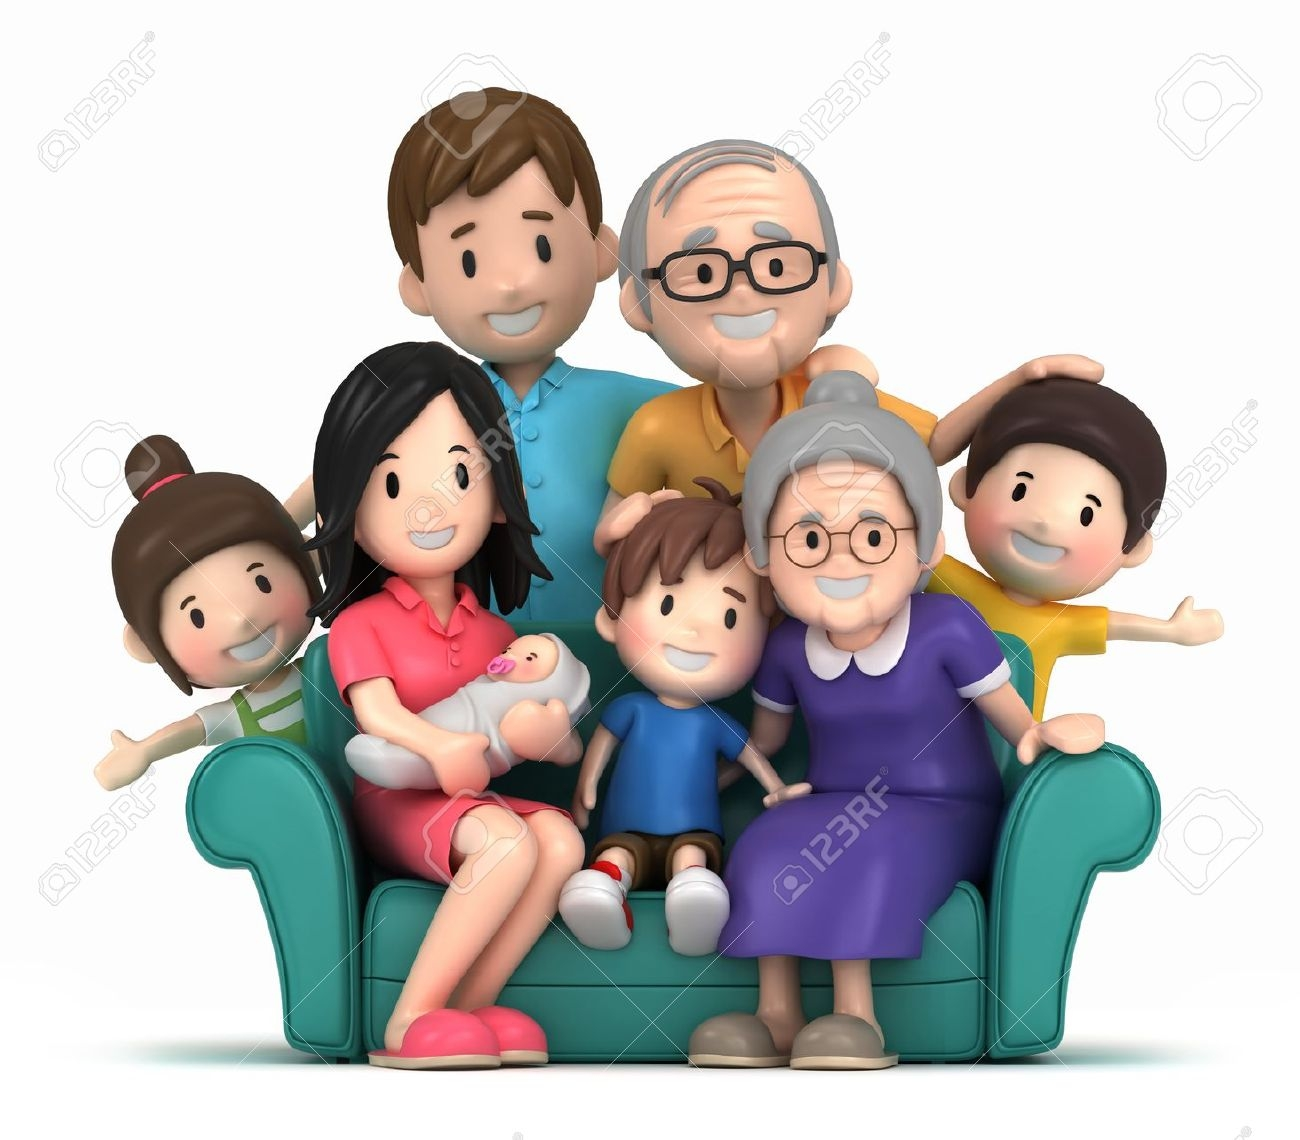 7 clipart family. Fresh gallery digital collection